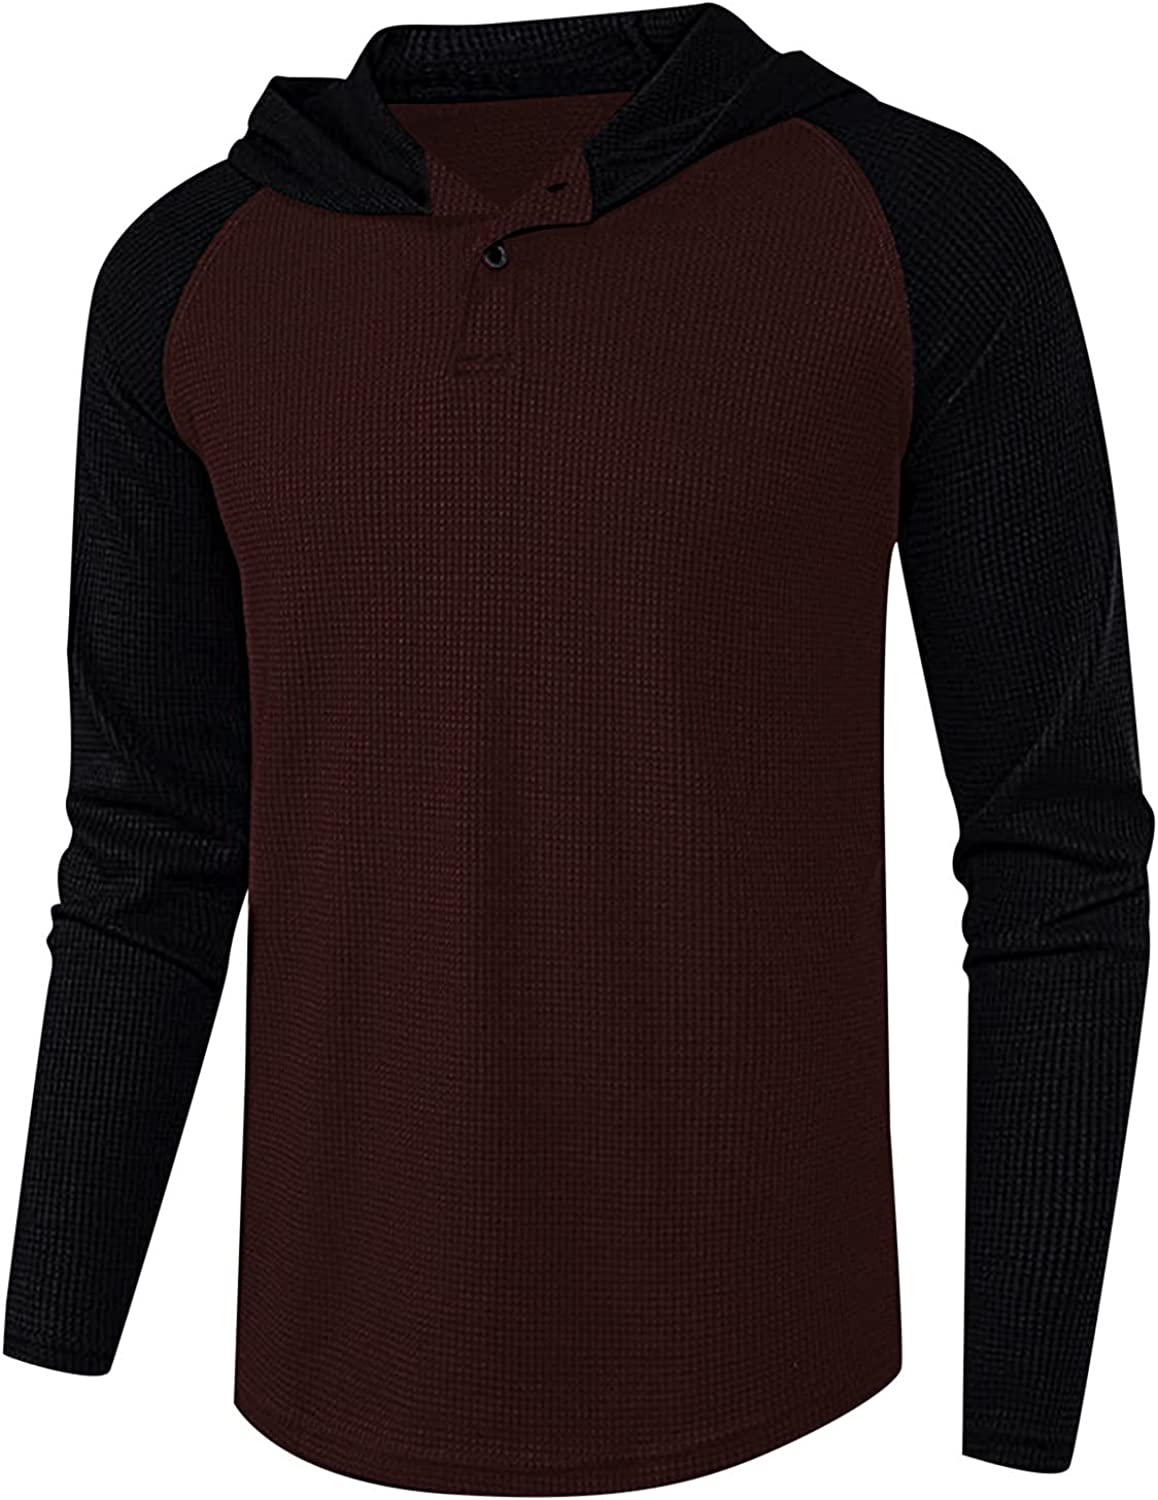 Tops for New Shipping Free Men Basic Solid Color Sleeve Fit Long Round Button Baltimore Mall Slim